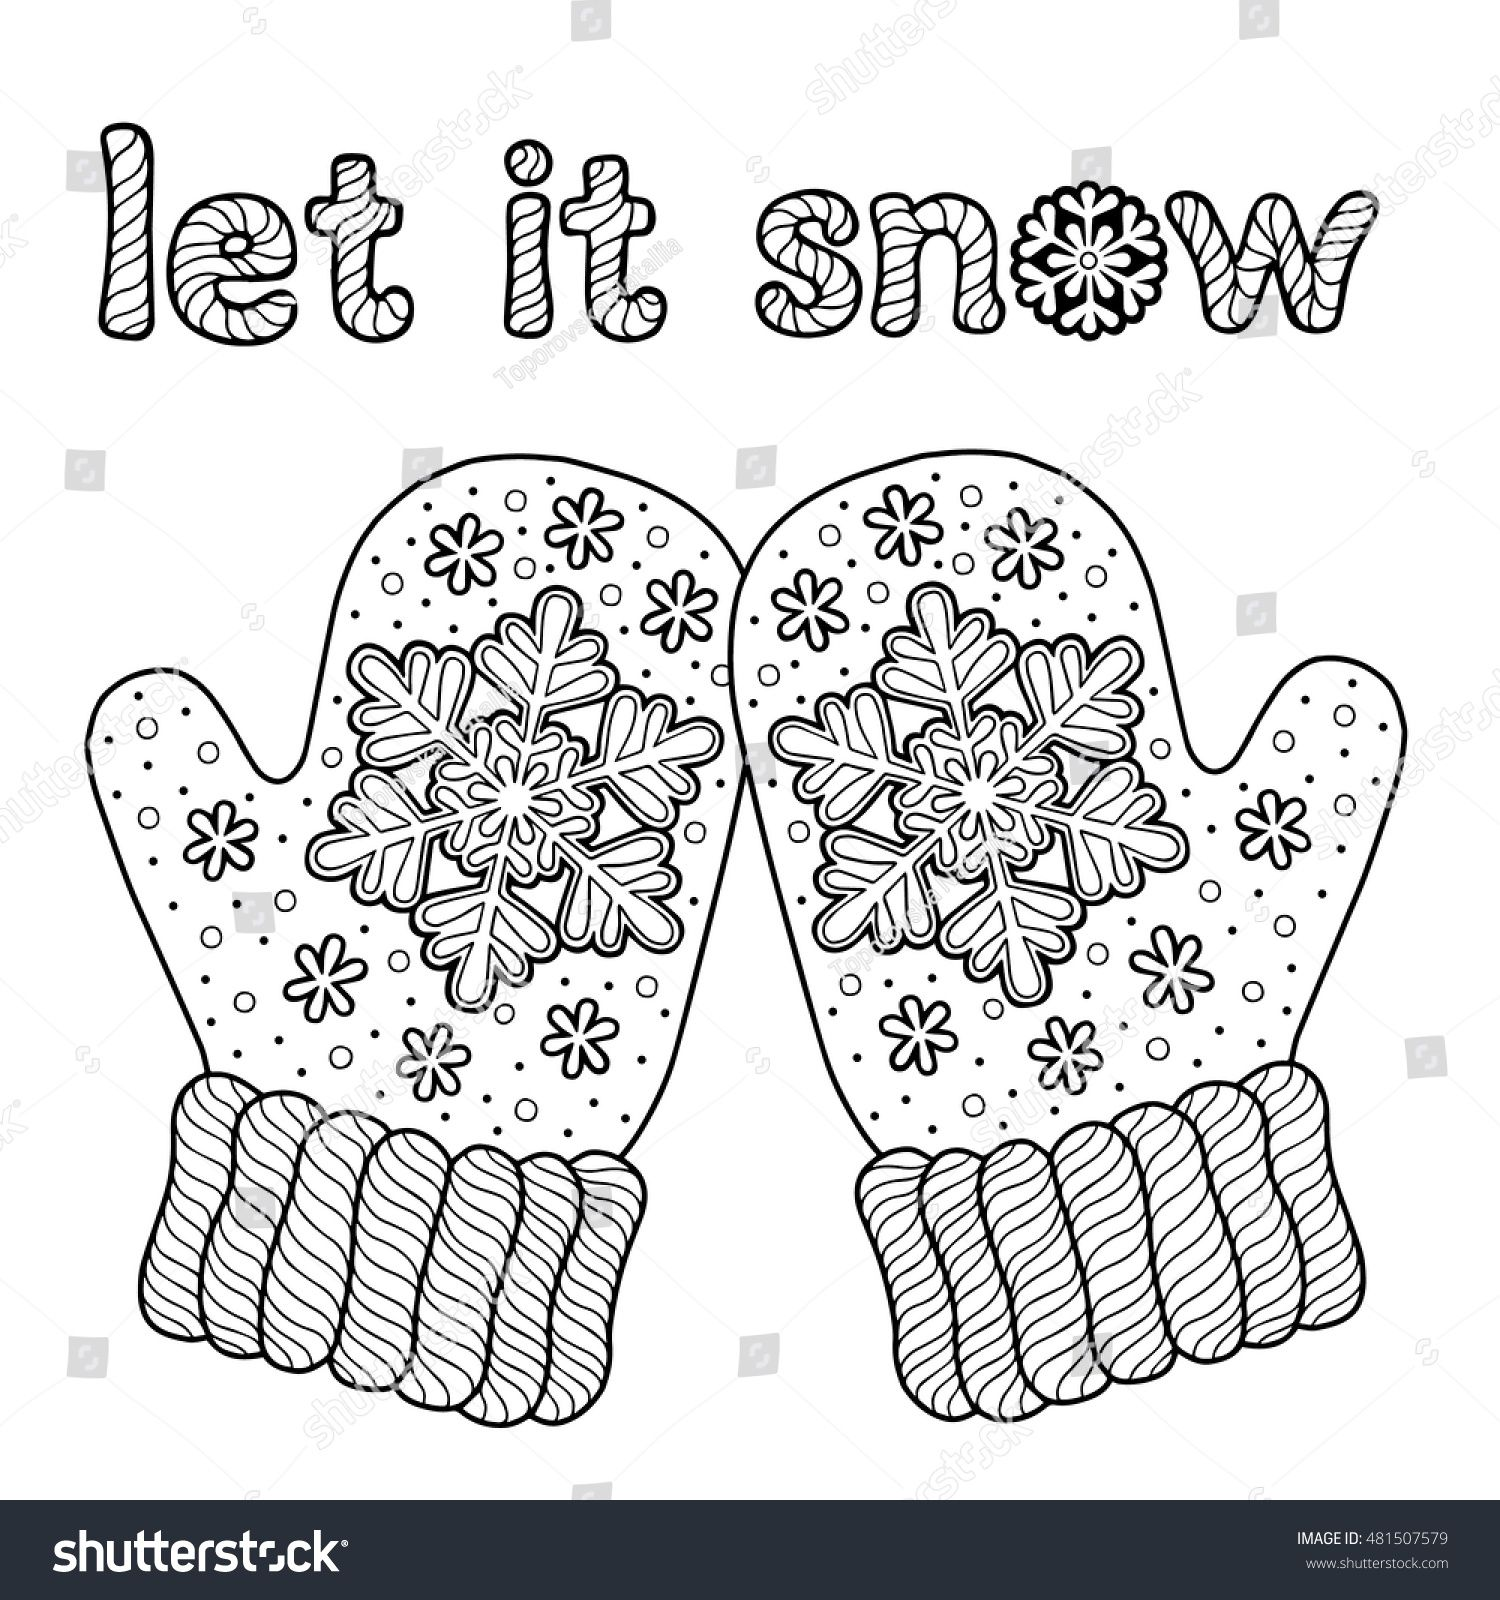 Let It Snow Coloring Page For Adults Hand Drawn Warm Knitted Mittens Vector Element Isolated In W Coloring Pages Coloring Pages Winter Spring Coloring Pages